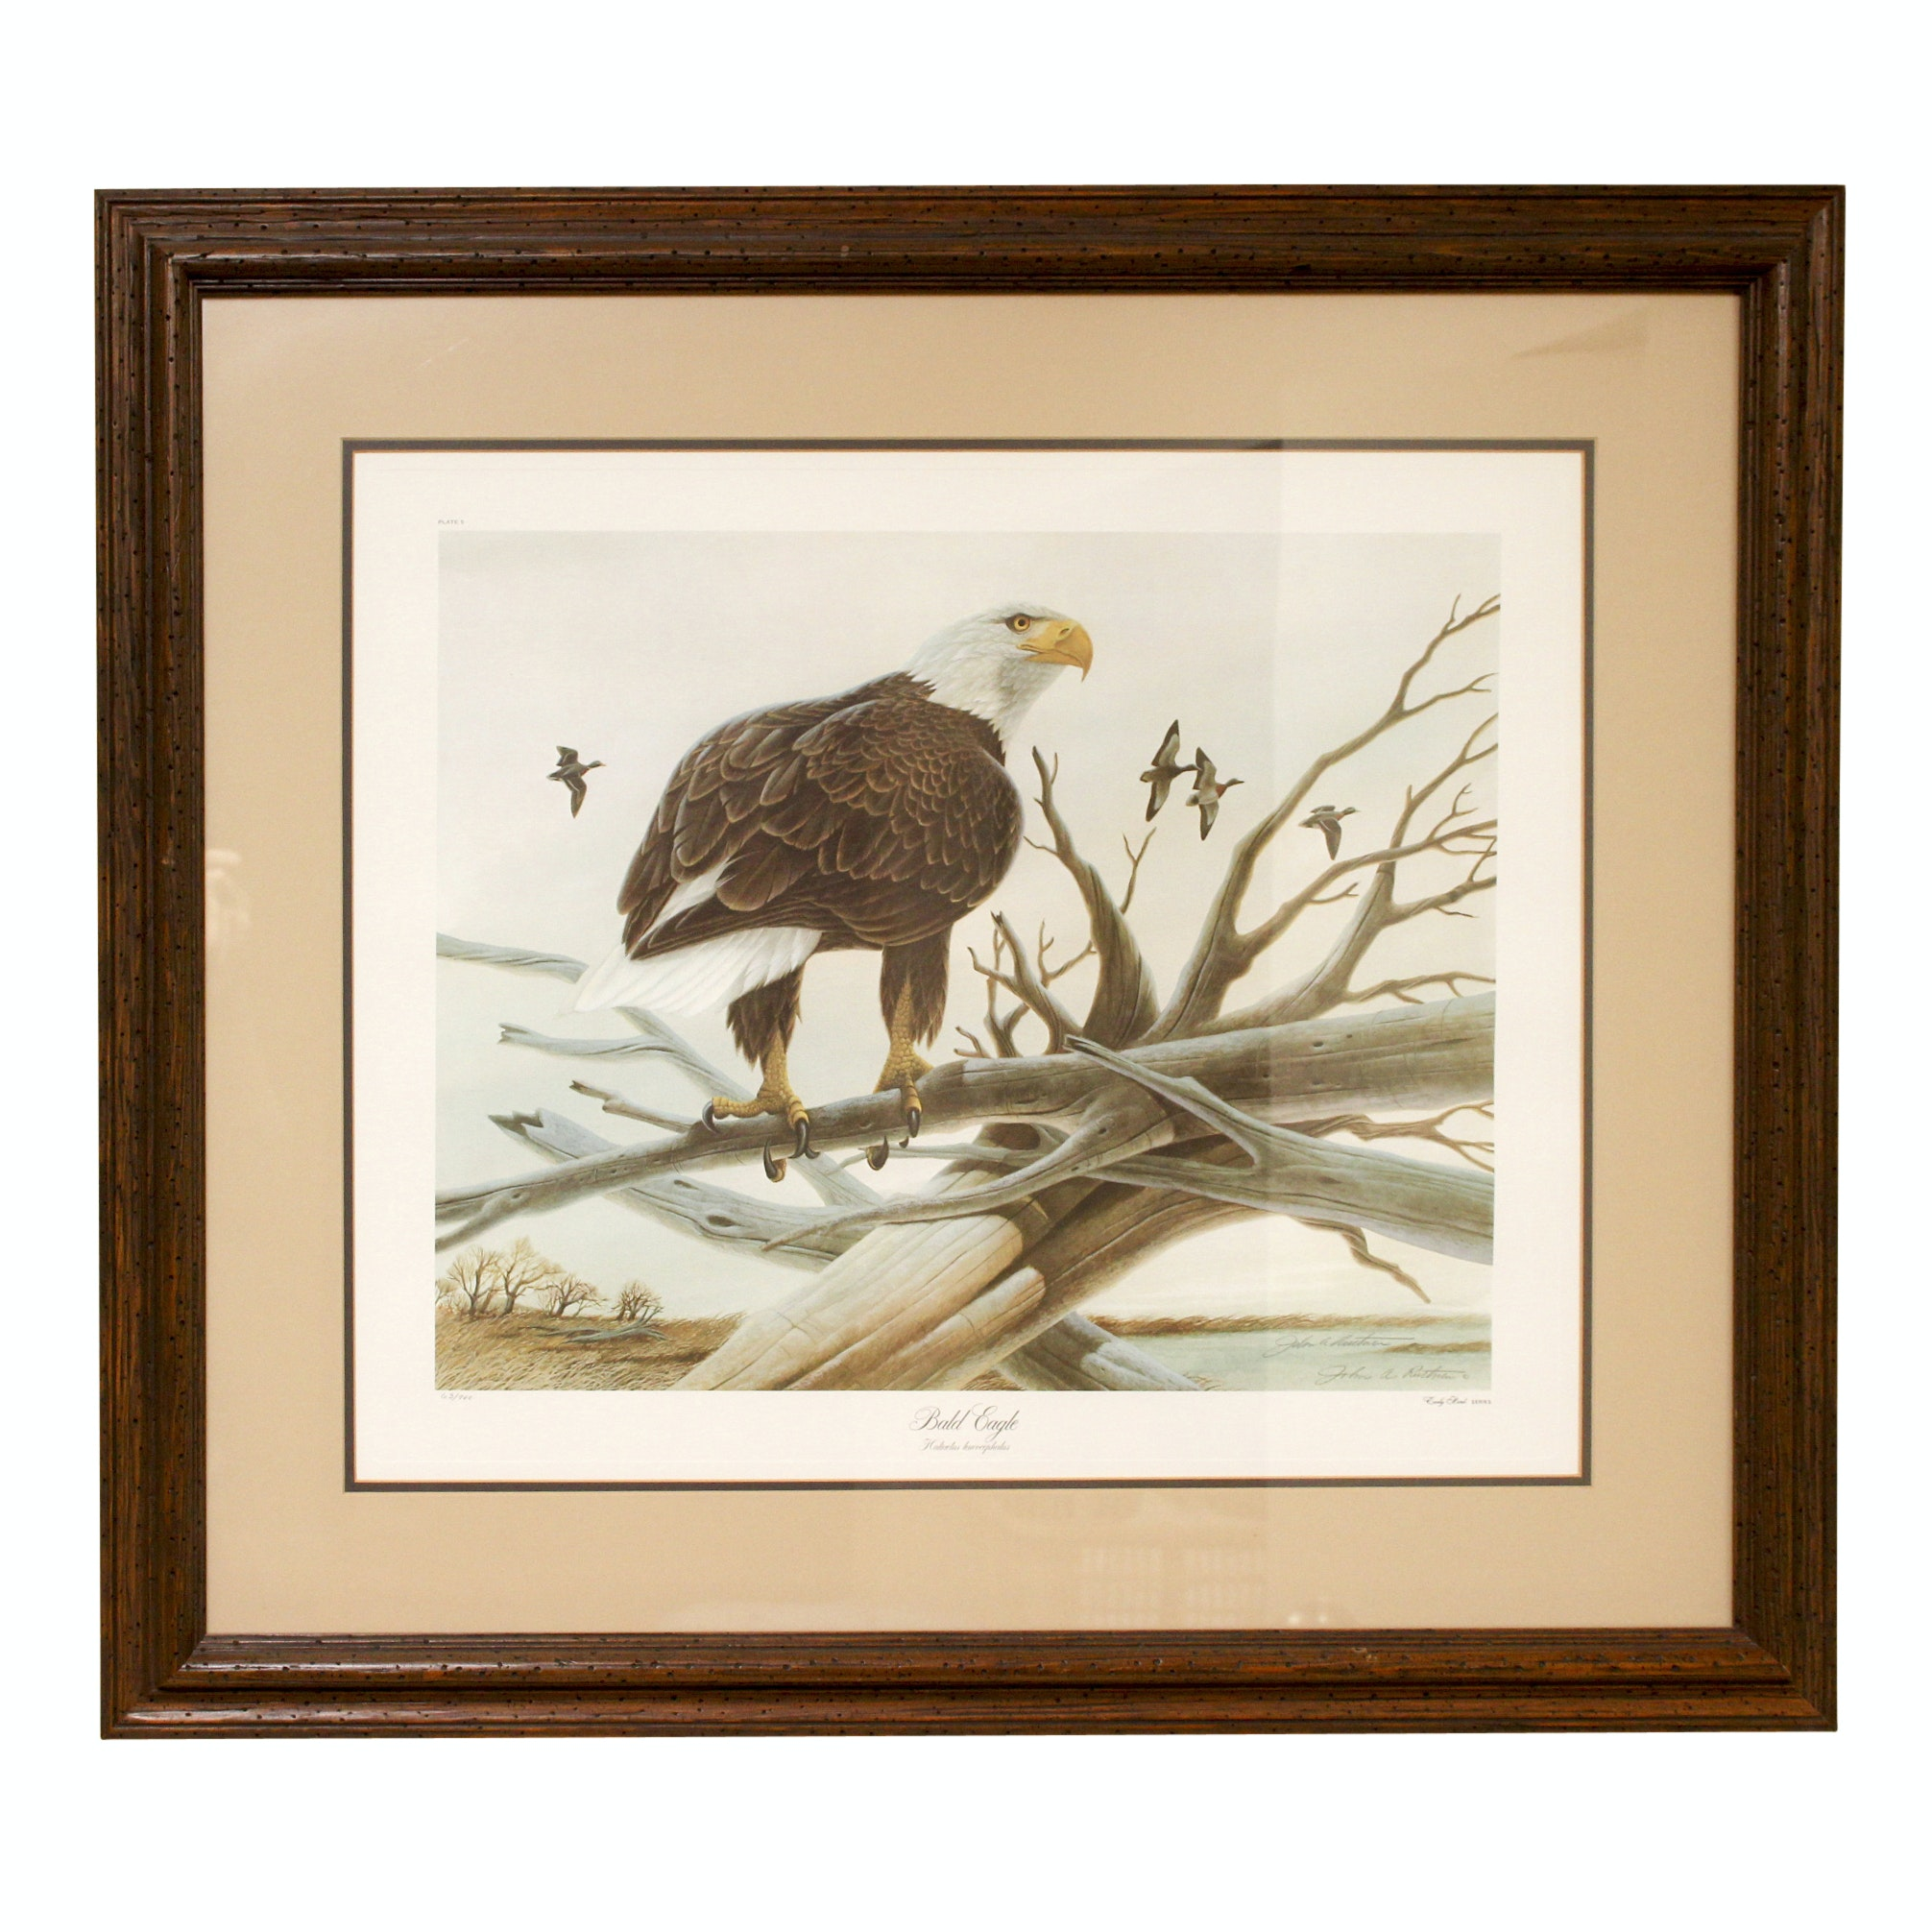 """John Ruthven Signed Limited Edition Offset Lithograph """"Bald Eagle"""""""